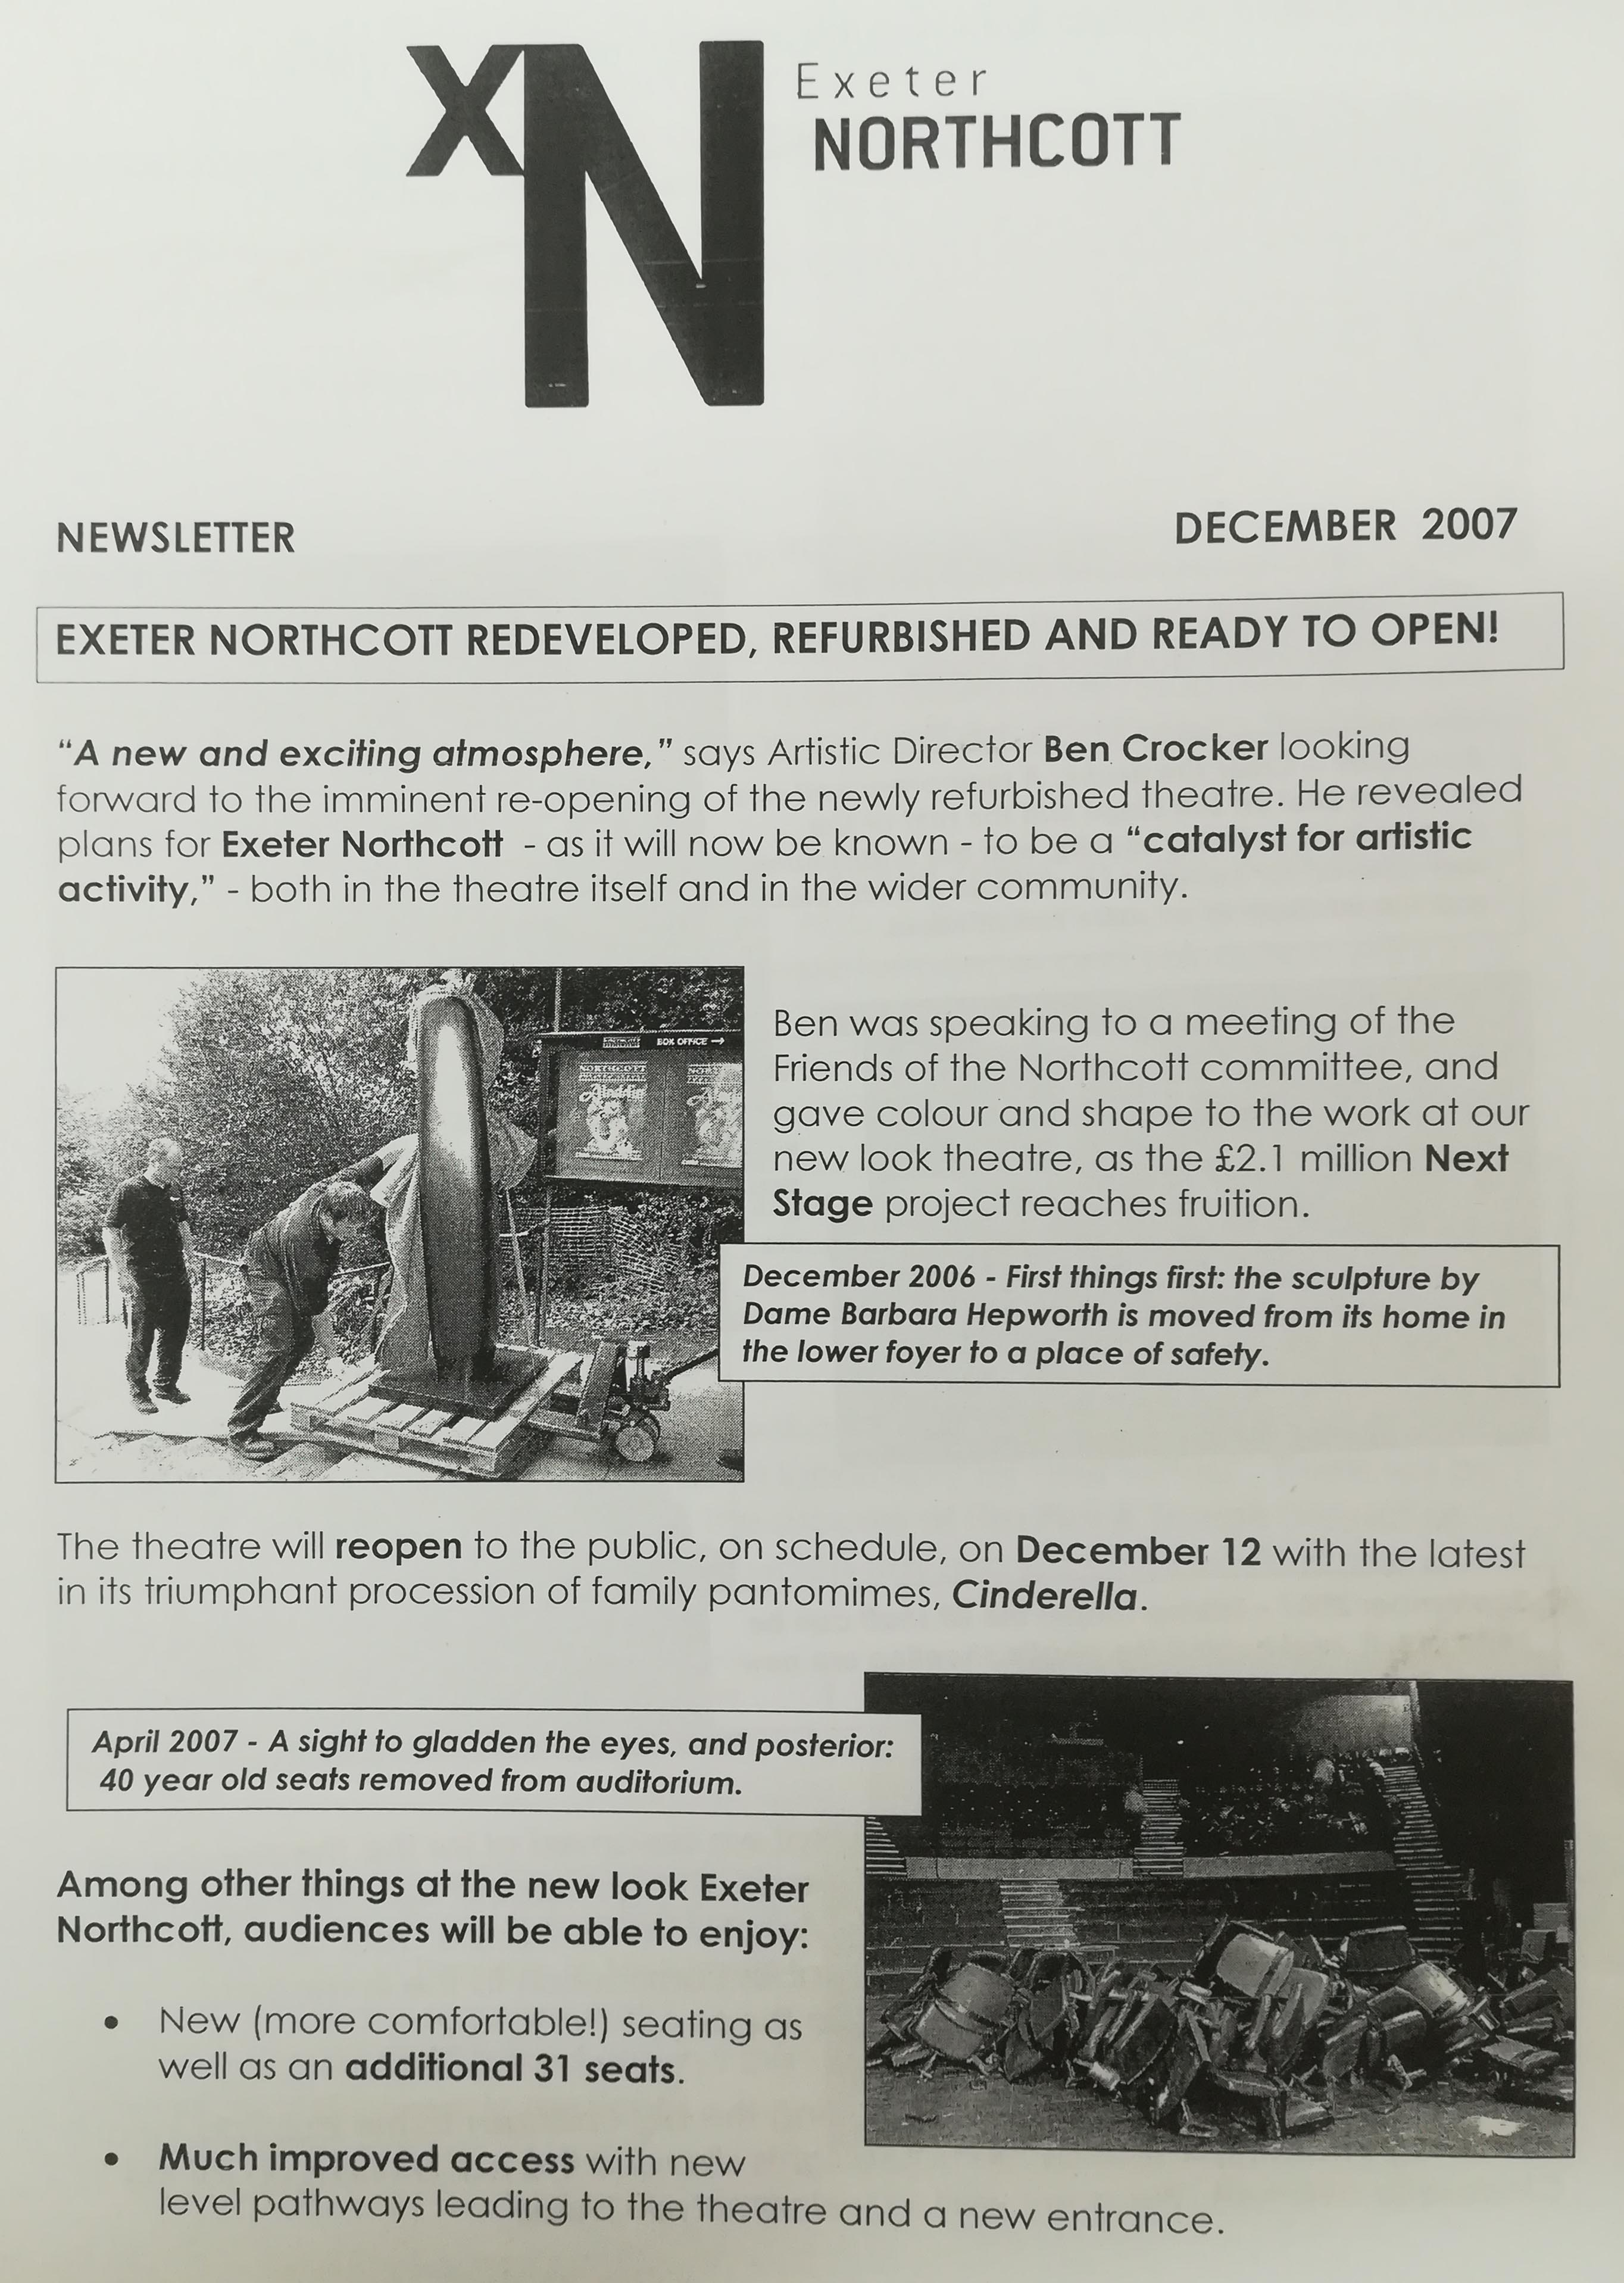 Newsletter from December 2007 announcing the re-opening of the newly refurbished Northcott Theatre